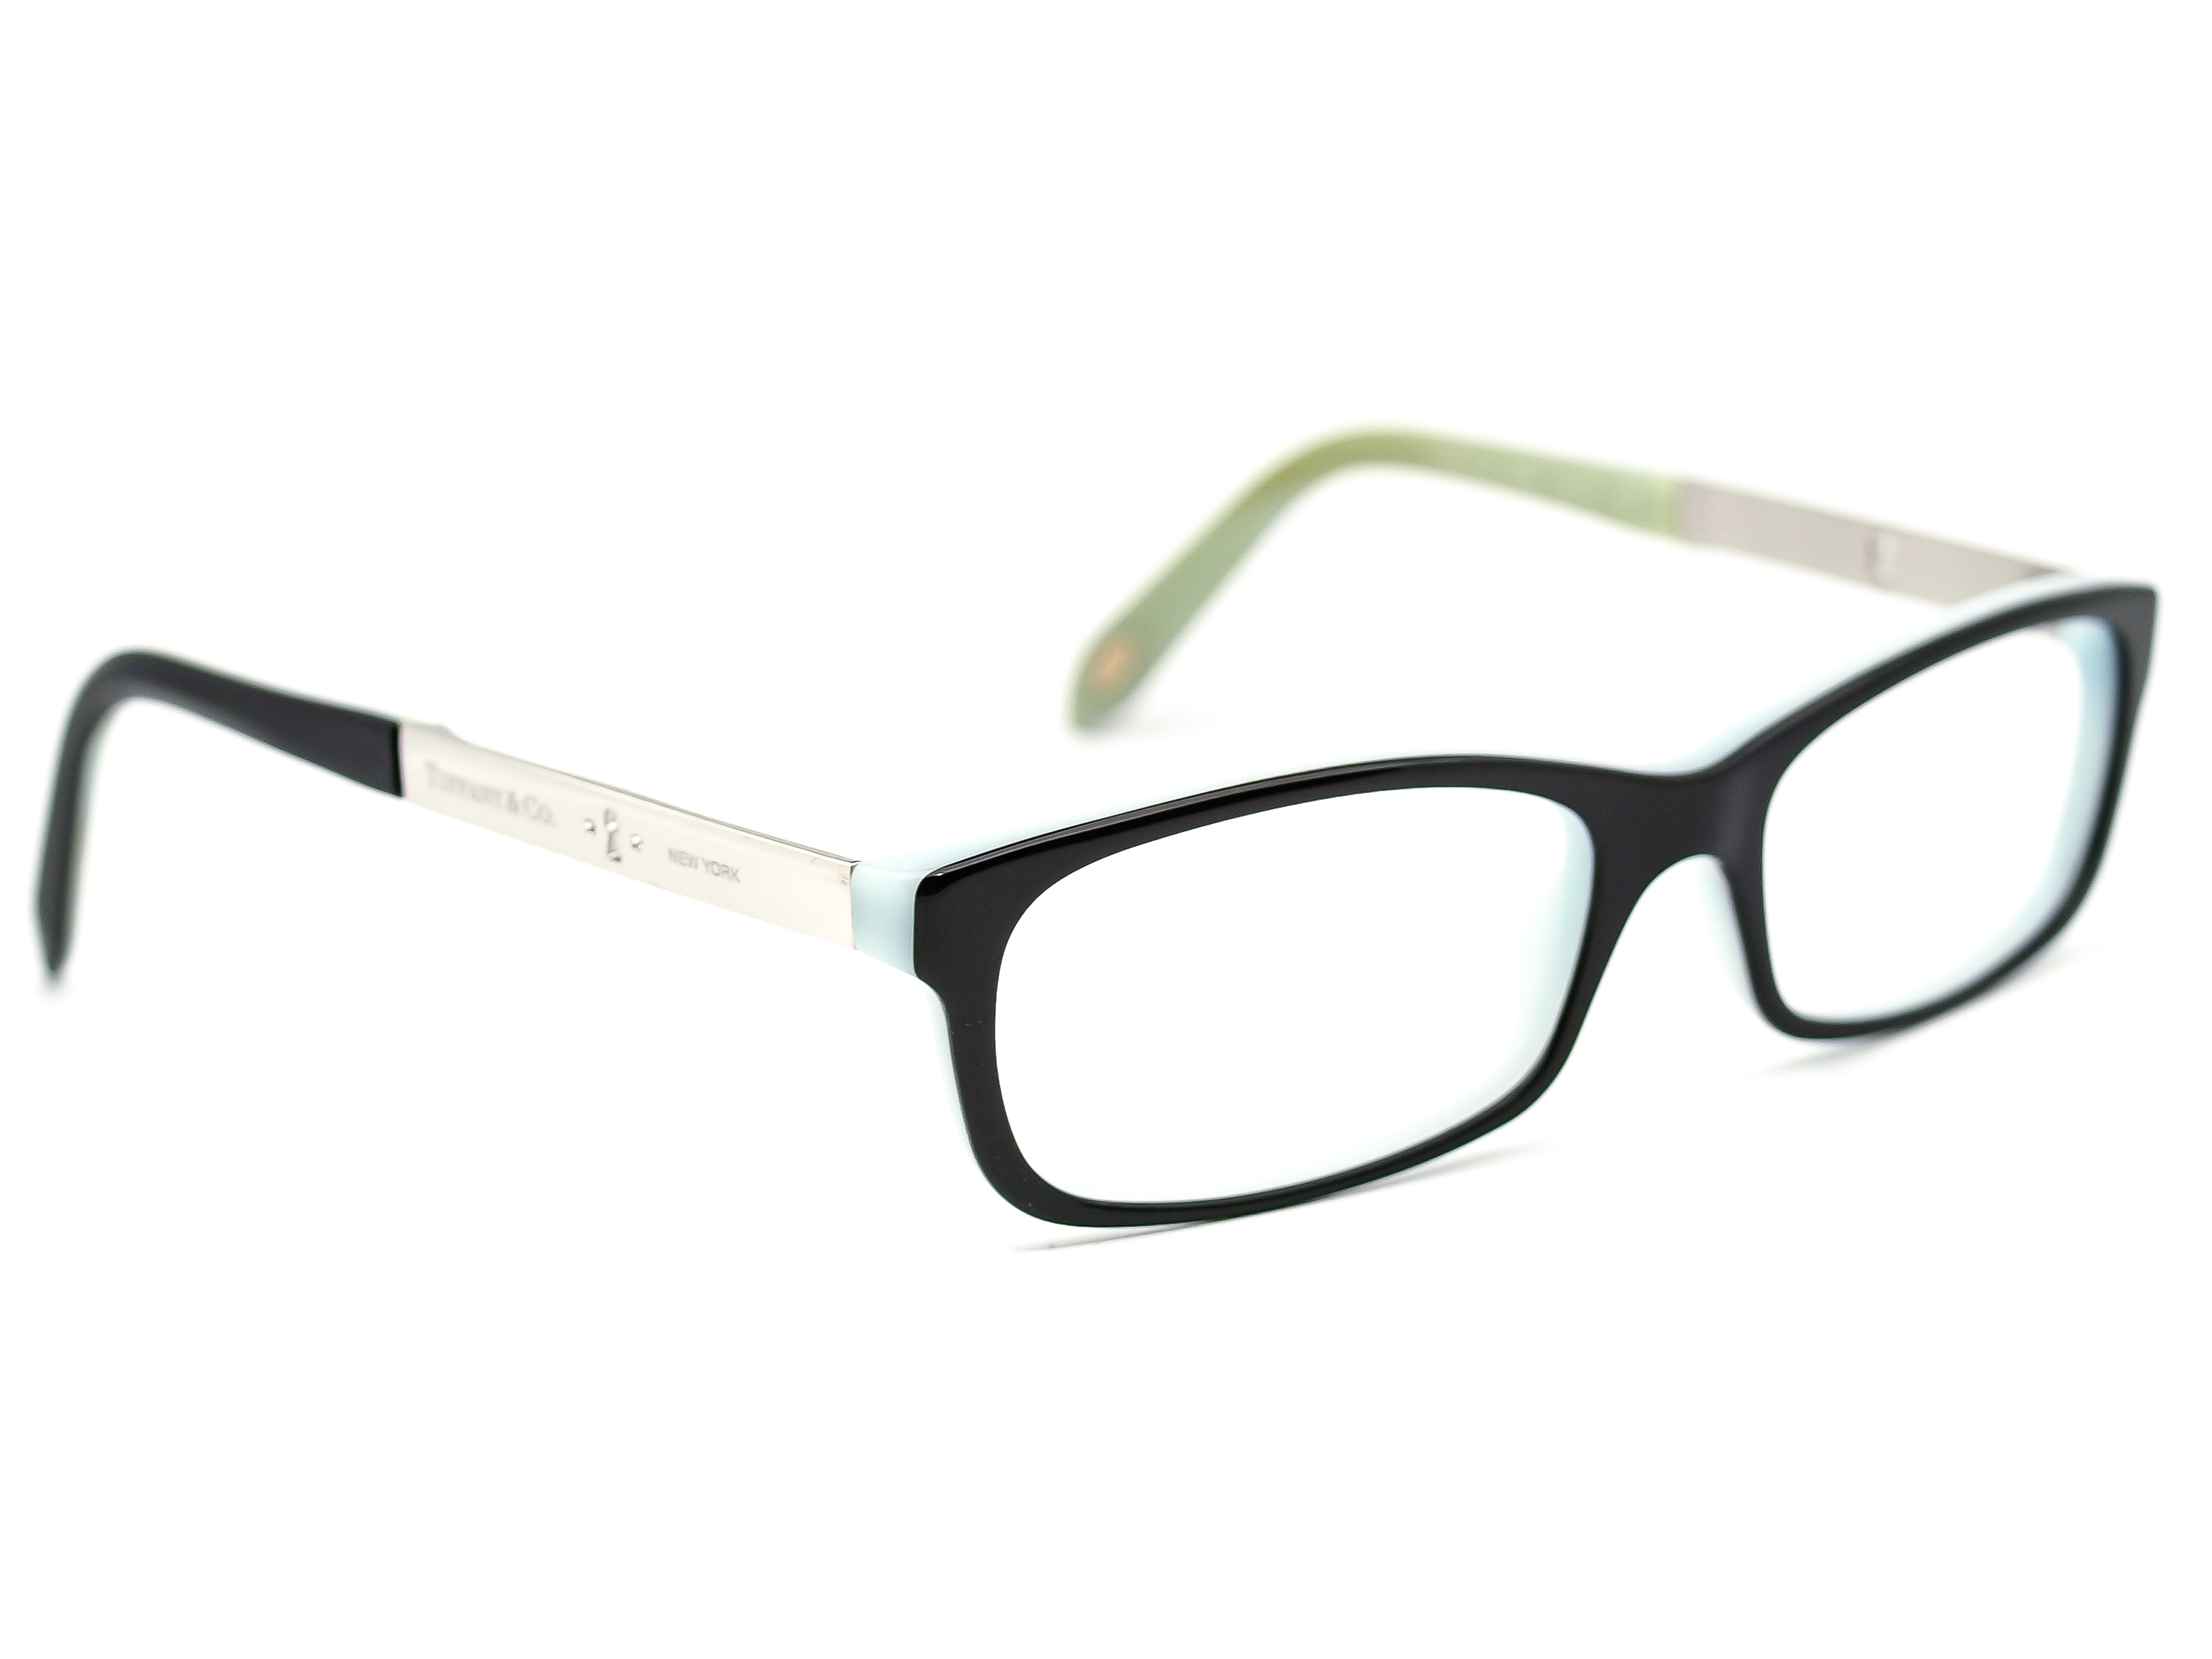 Tiffany & Co. TY 2071-B 8055 Eyeglasses